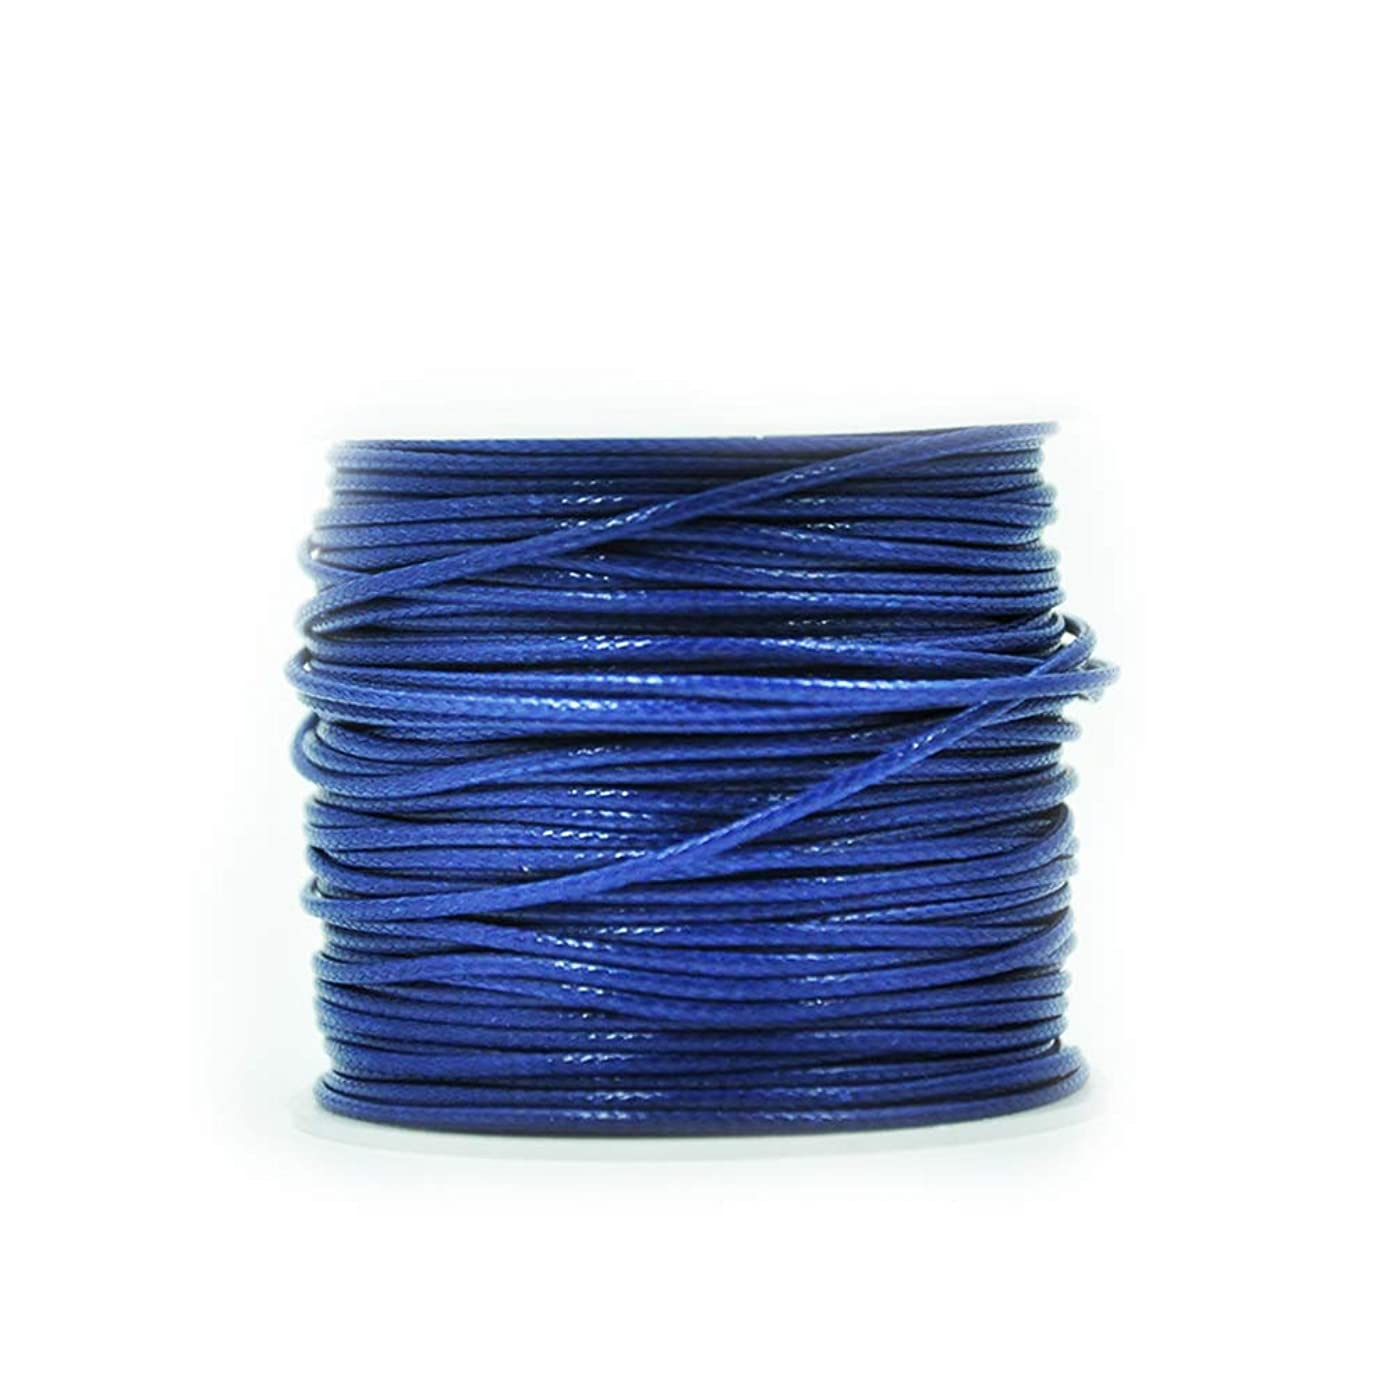 QYSM Waxed Cotton Cord Waxed Thread Cord String Strap Necklace Rope DIY Jewelry Making£?1mm (Navy)